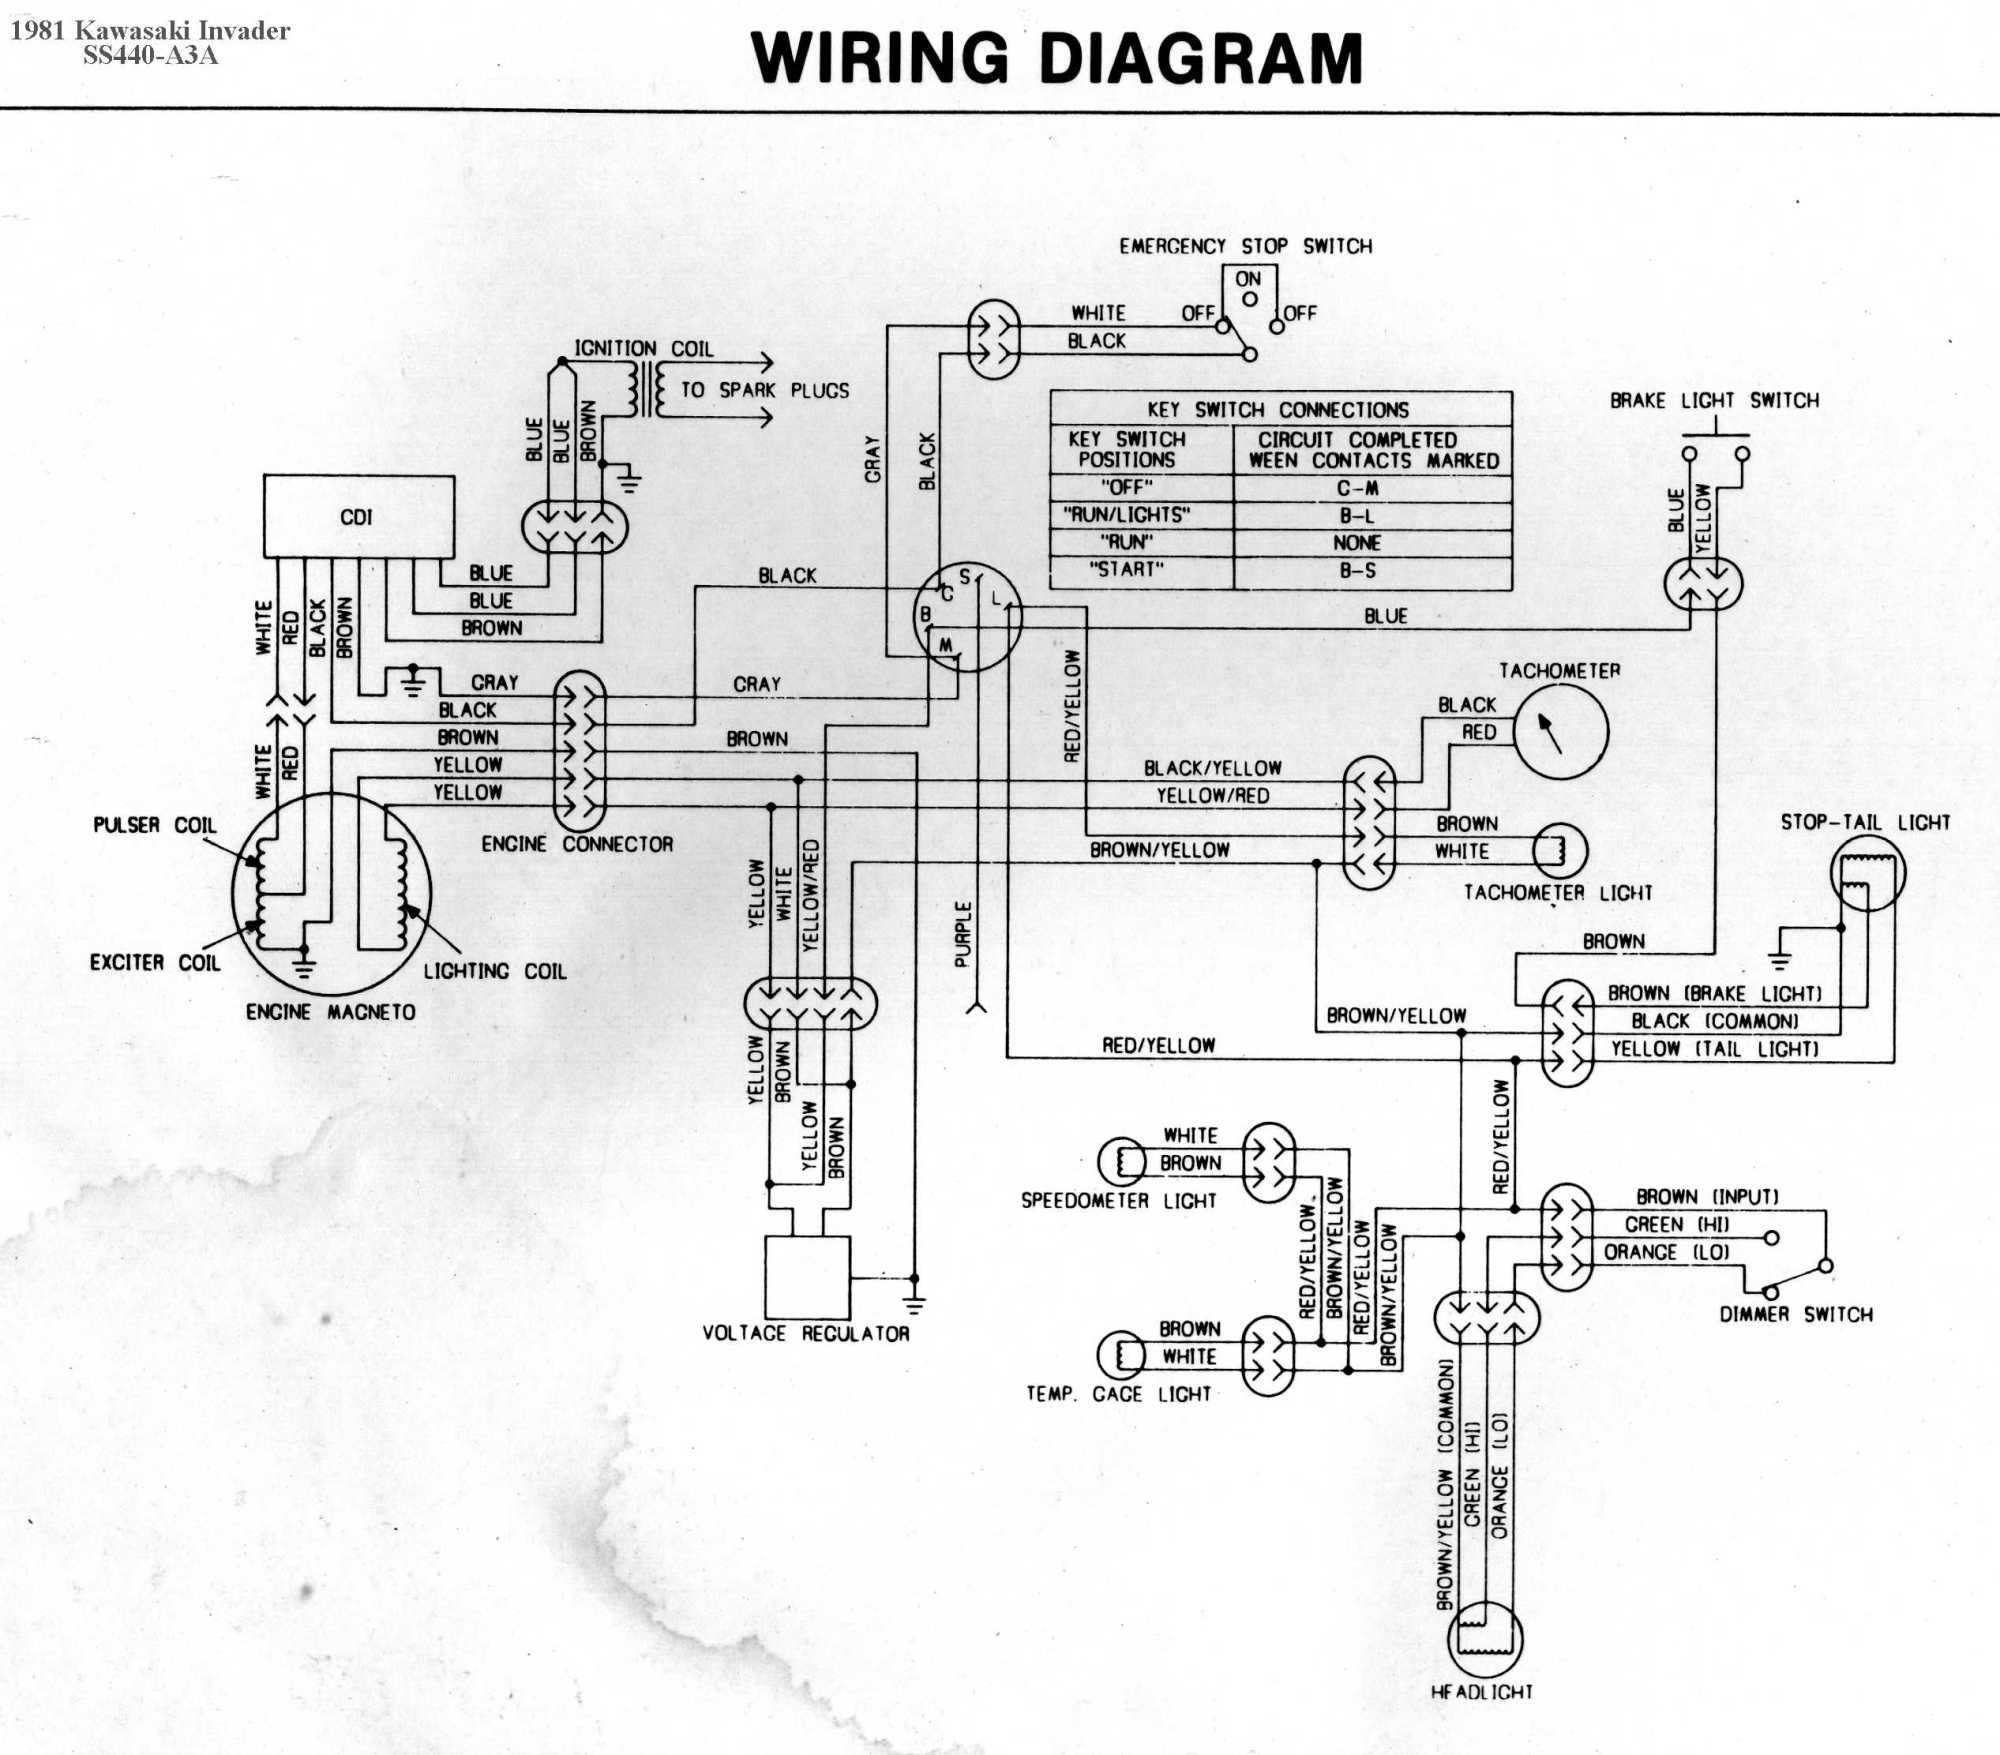 hight resolution of arctic cat jet ski wiring diagrams wiring diagrams img arctic cat 300 wiring diagram arctic cat jet ski wiring diagrams